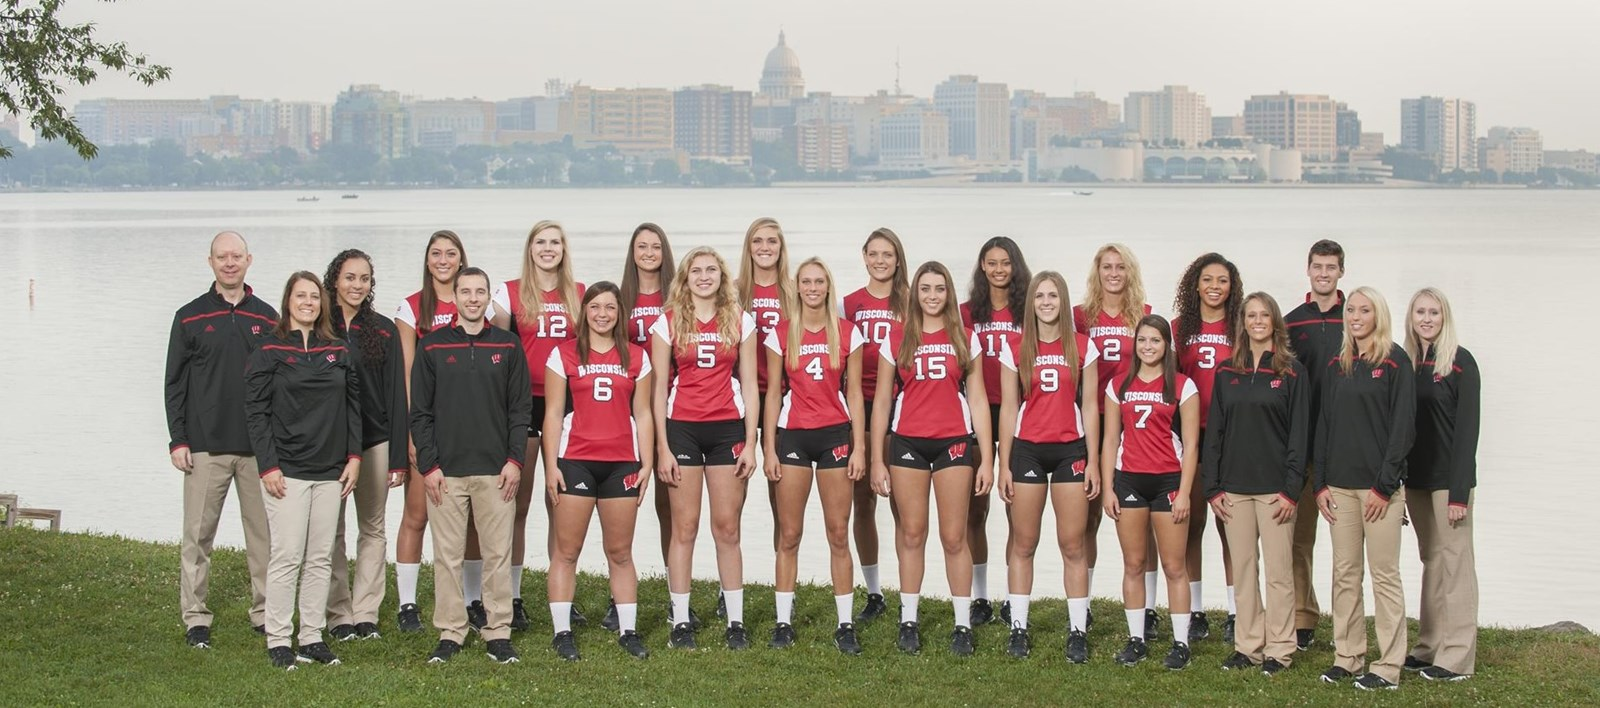 2015 Volleyball Roster Wisconsin Badgers